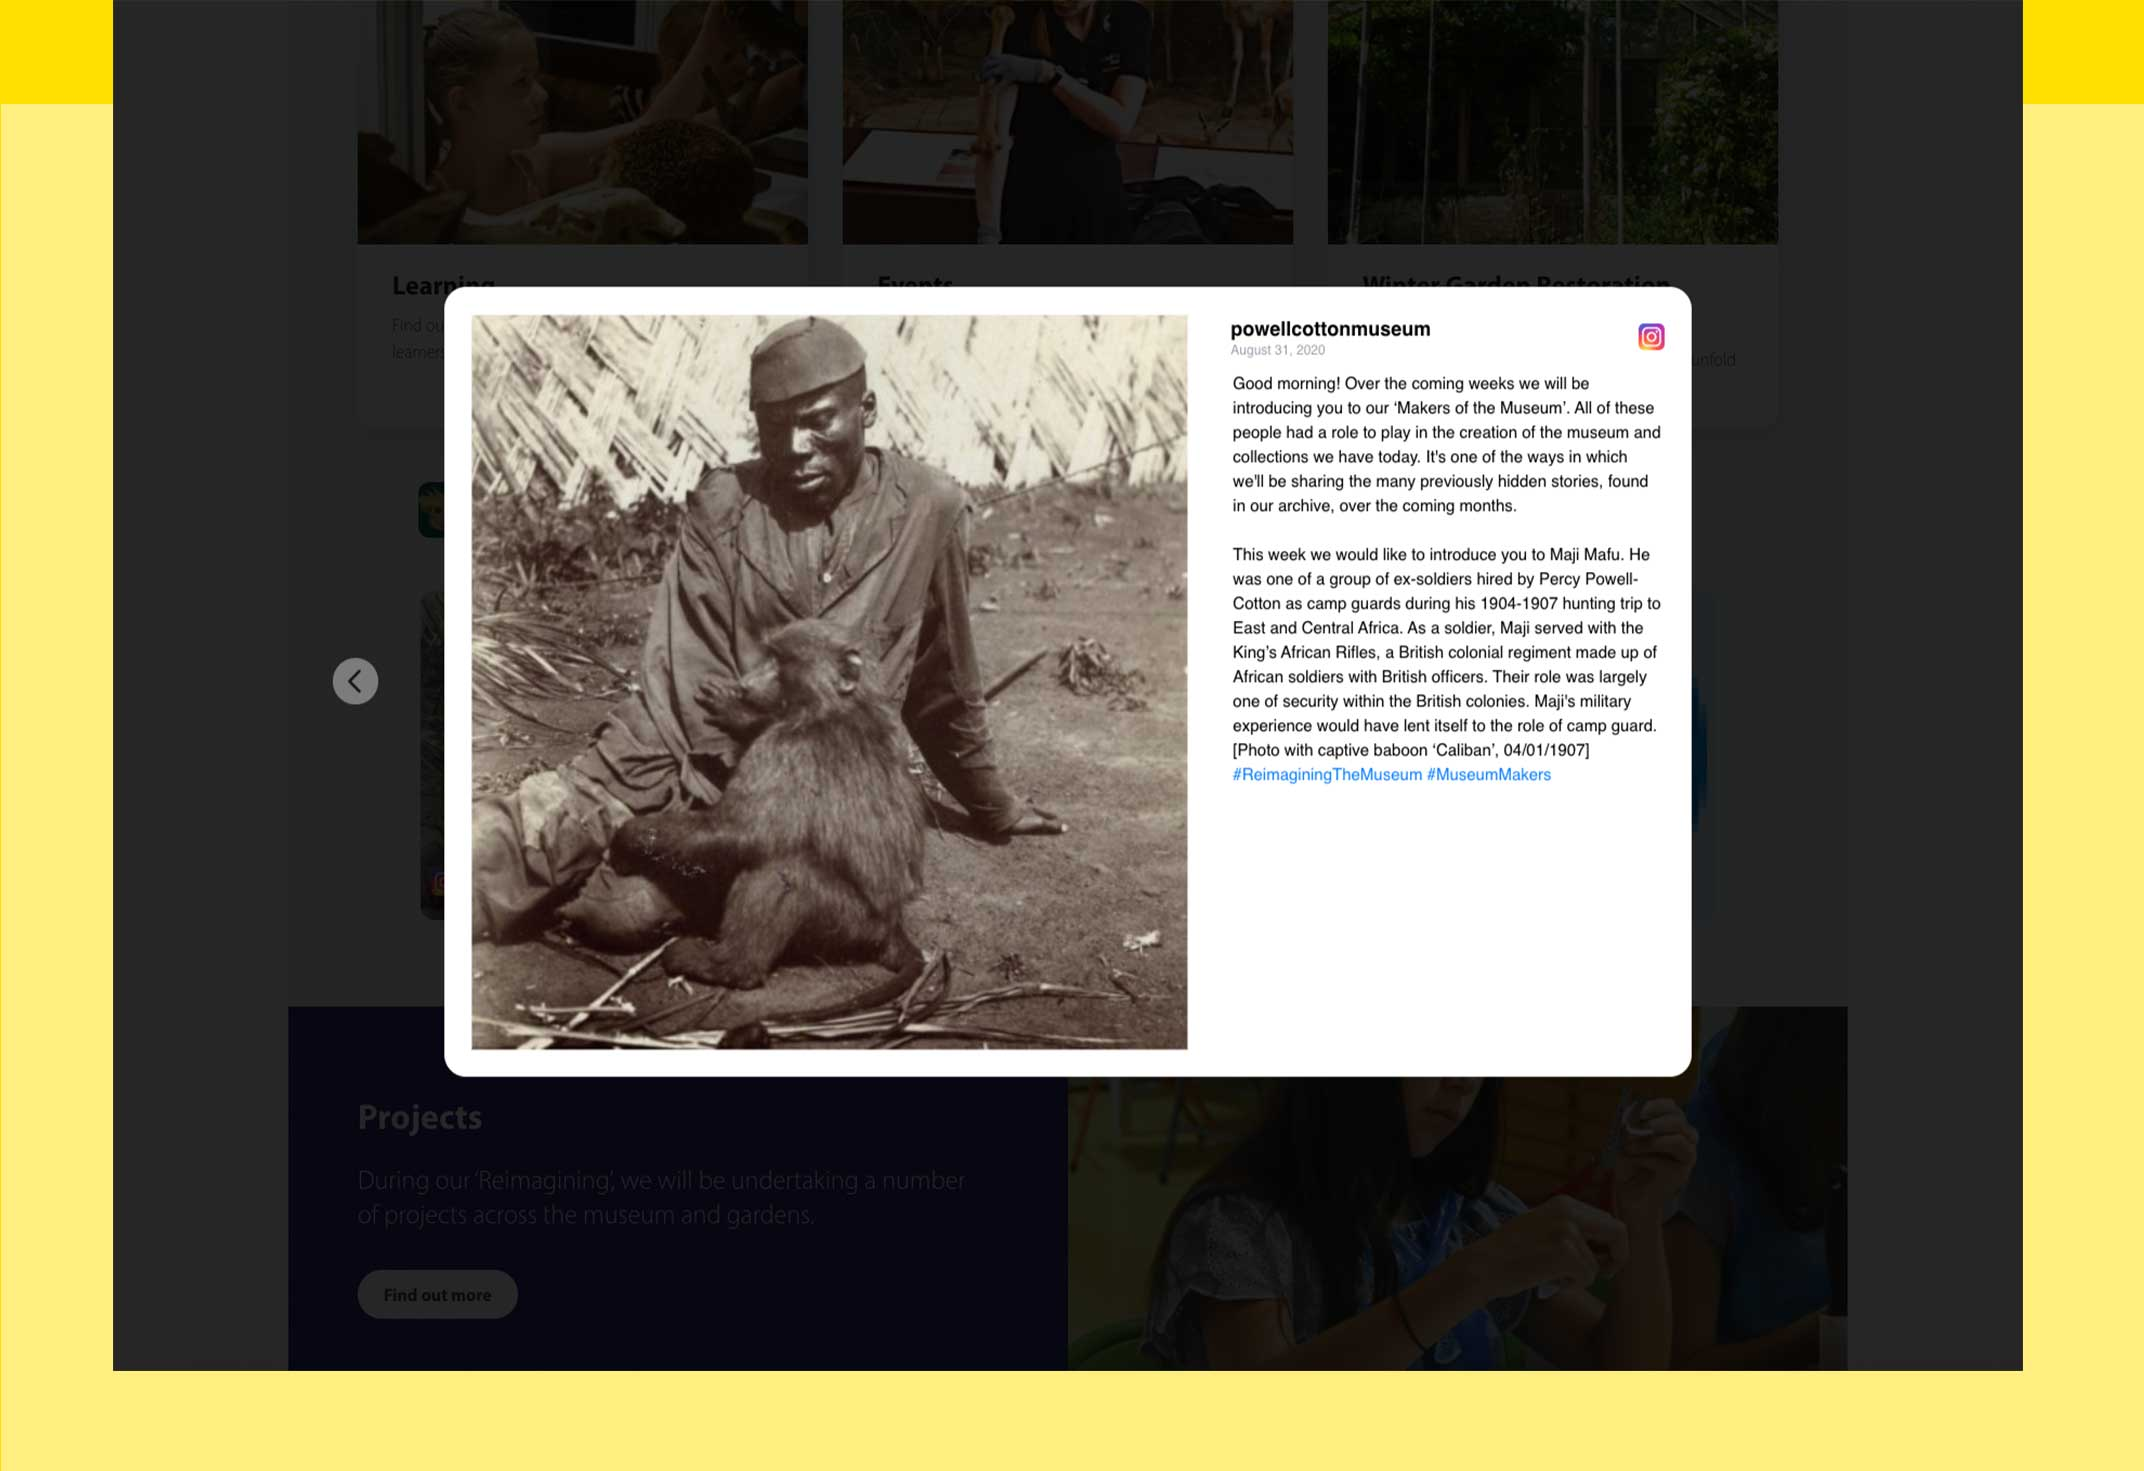 Screenshot of a featured social media post on the Powell-Cotton Website